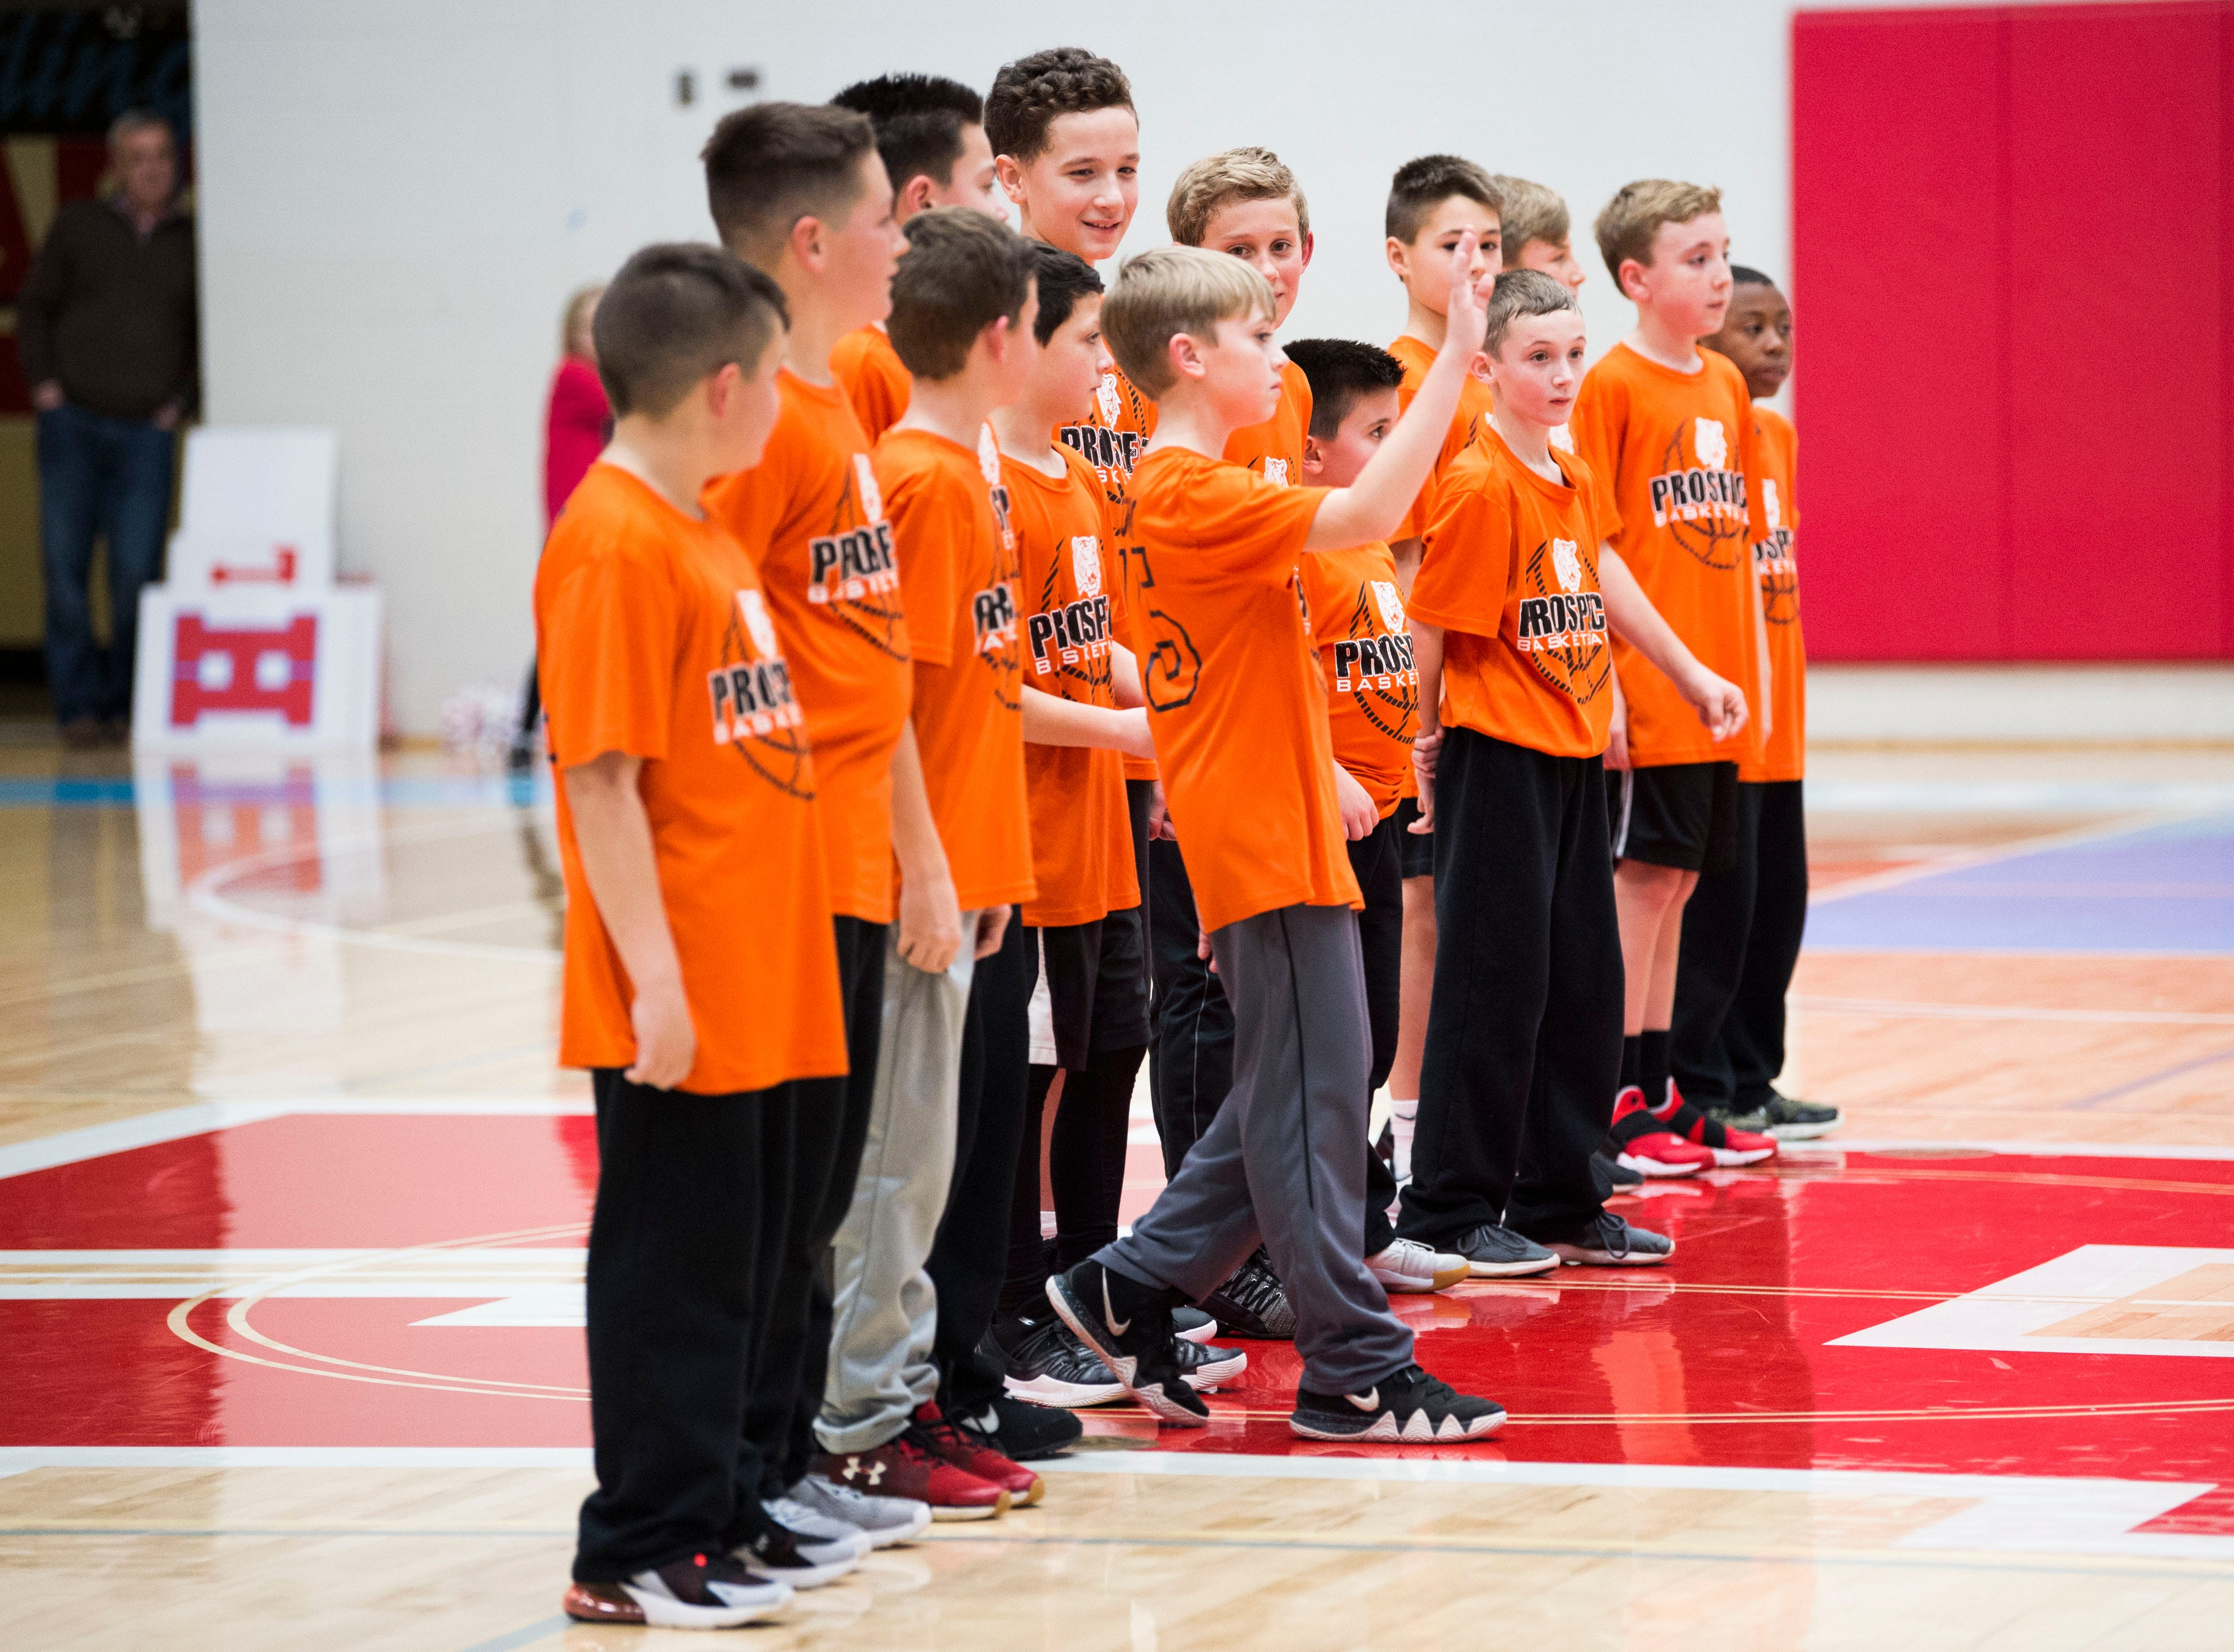 Youth basketball team Prospect is recognized at half time during a high school basketball game between Maryville and Heritage at Heritage Friday, Jan. 4, 2019. Both Maryville boys and girls teams beat Heritage.